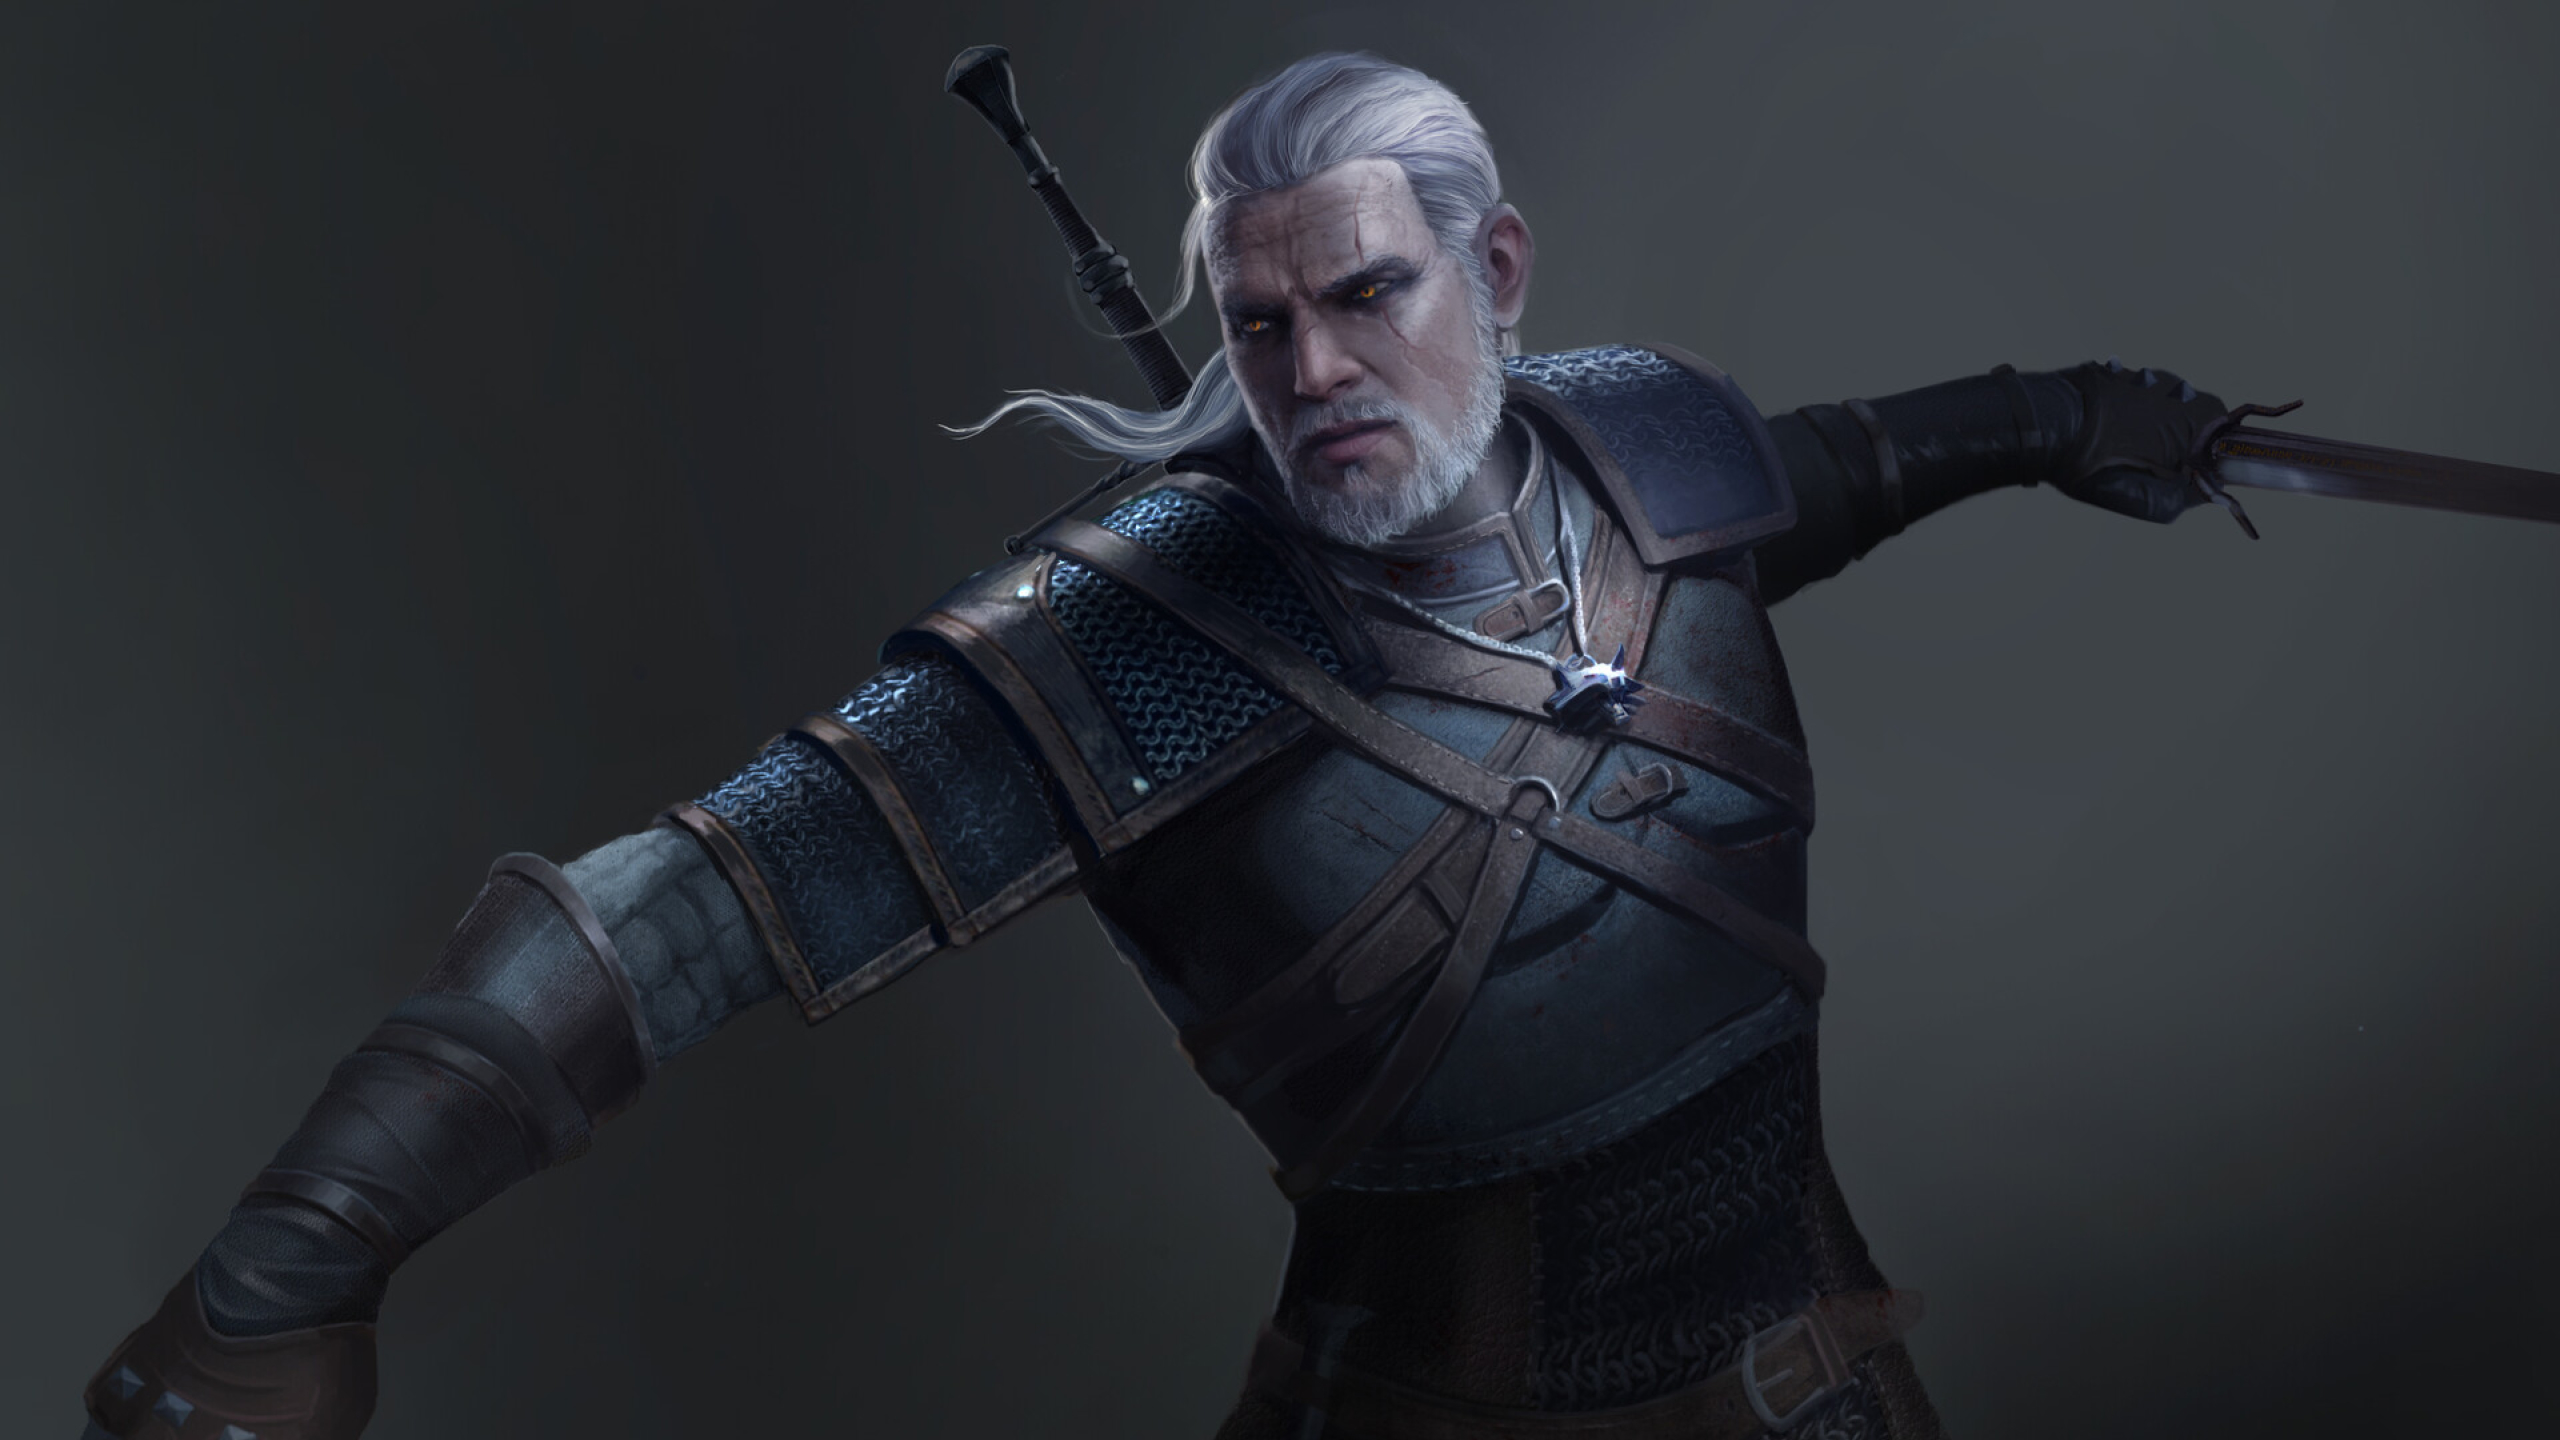 2560x1440 Geralt In The Witcher 3 1440p Resolution Wallpaper Hd